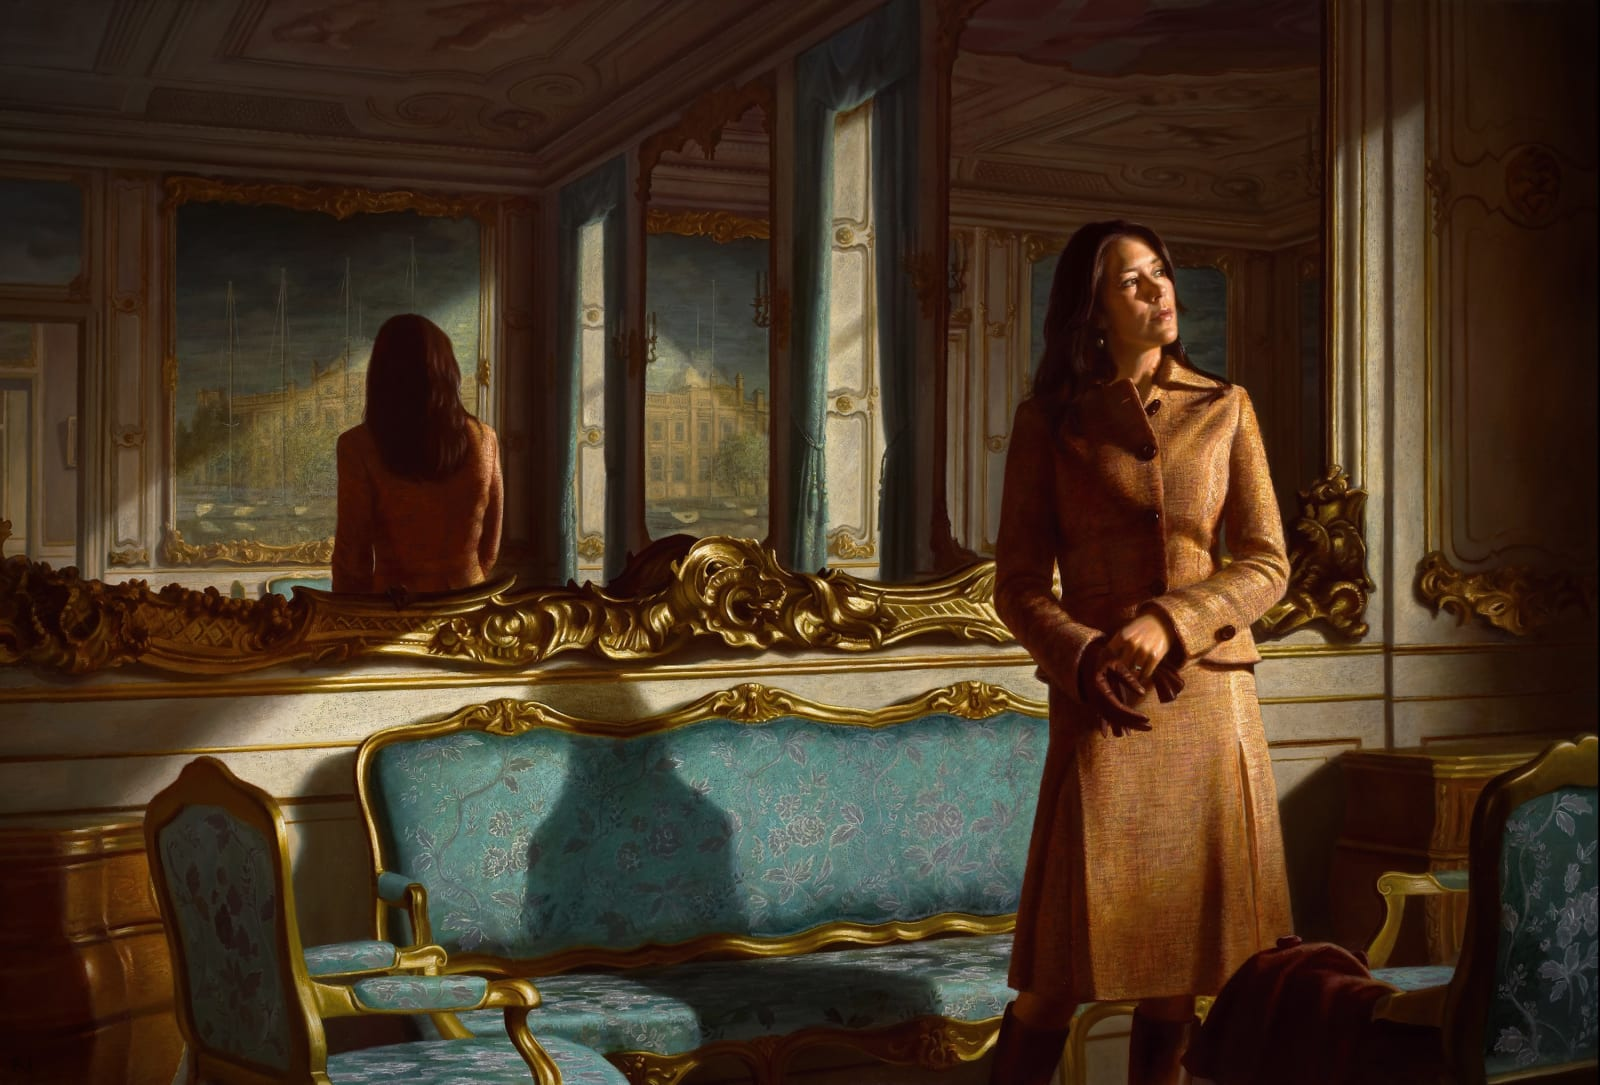 HRH Crown Princess Mary of Denmark Oil on canvas 170 x 250 cm The Museum of National History